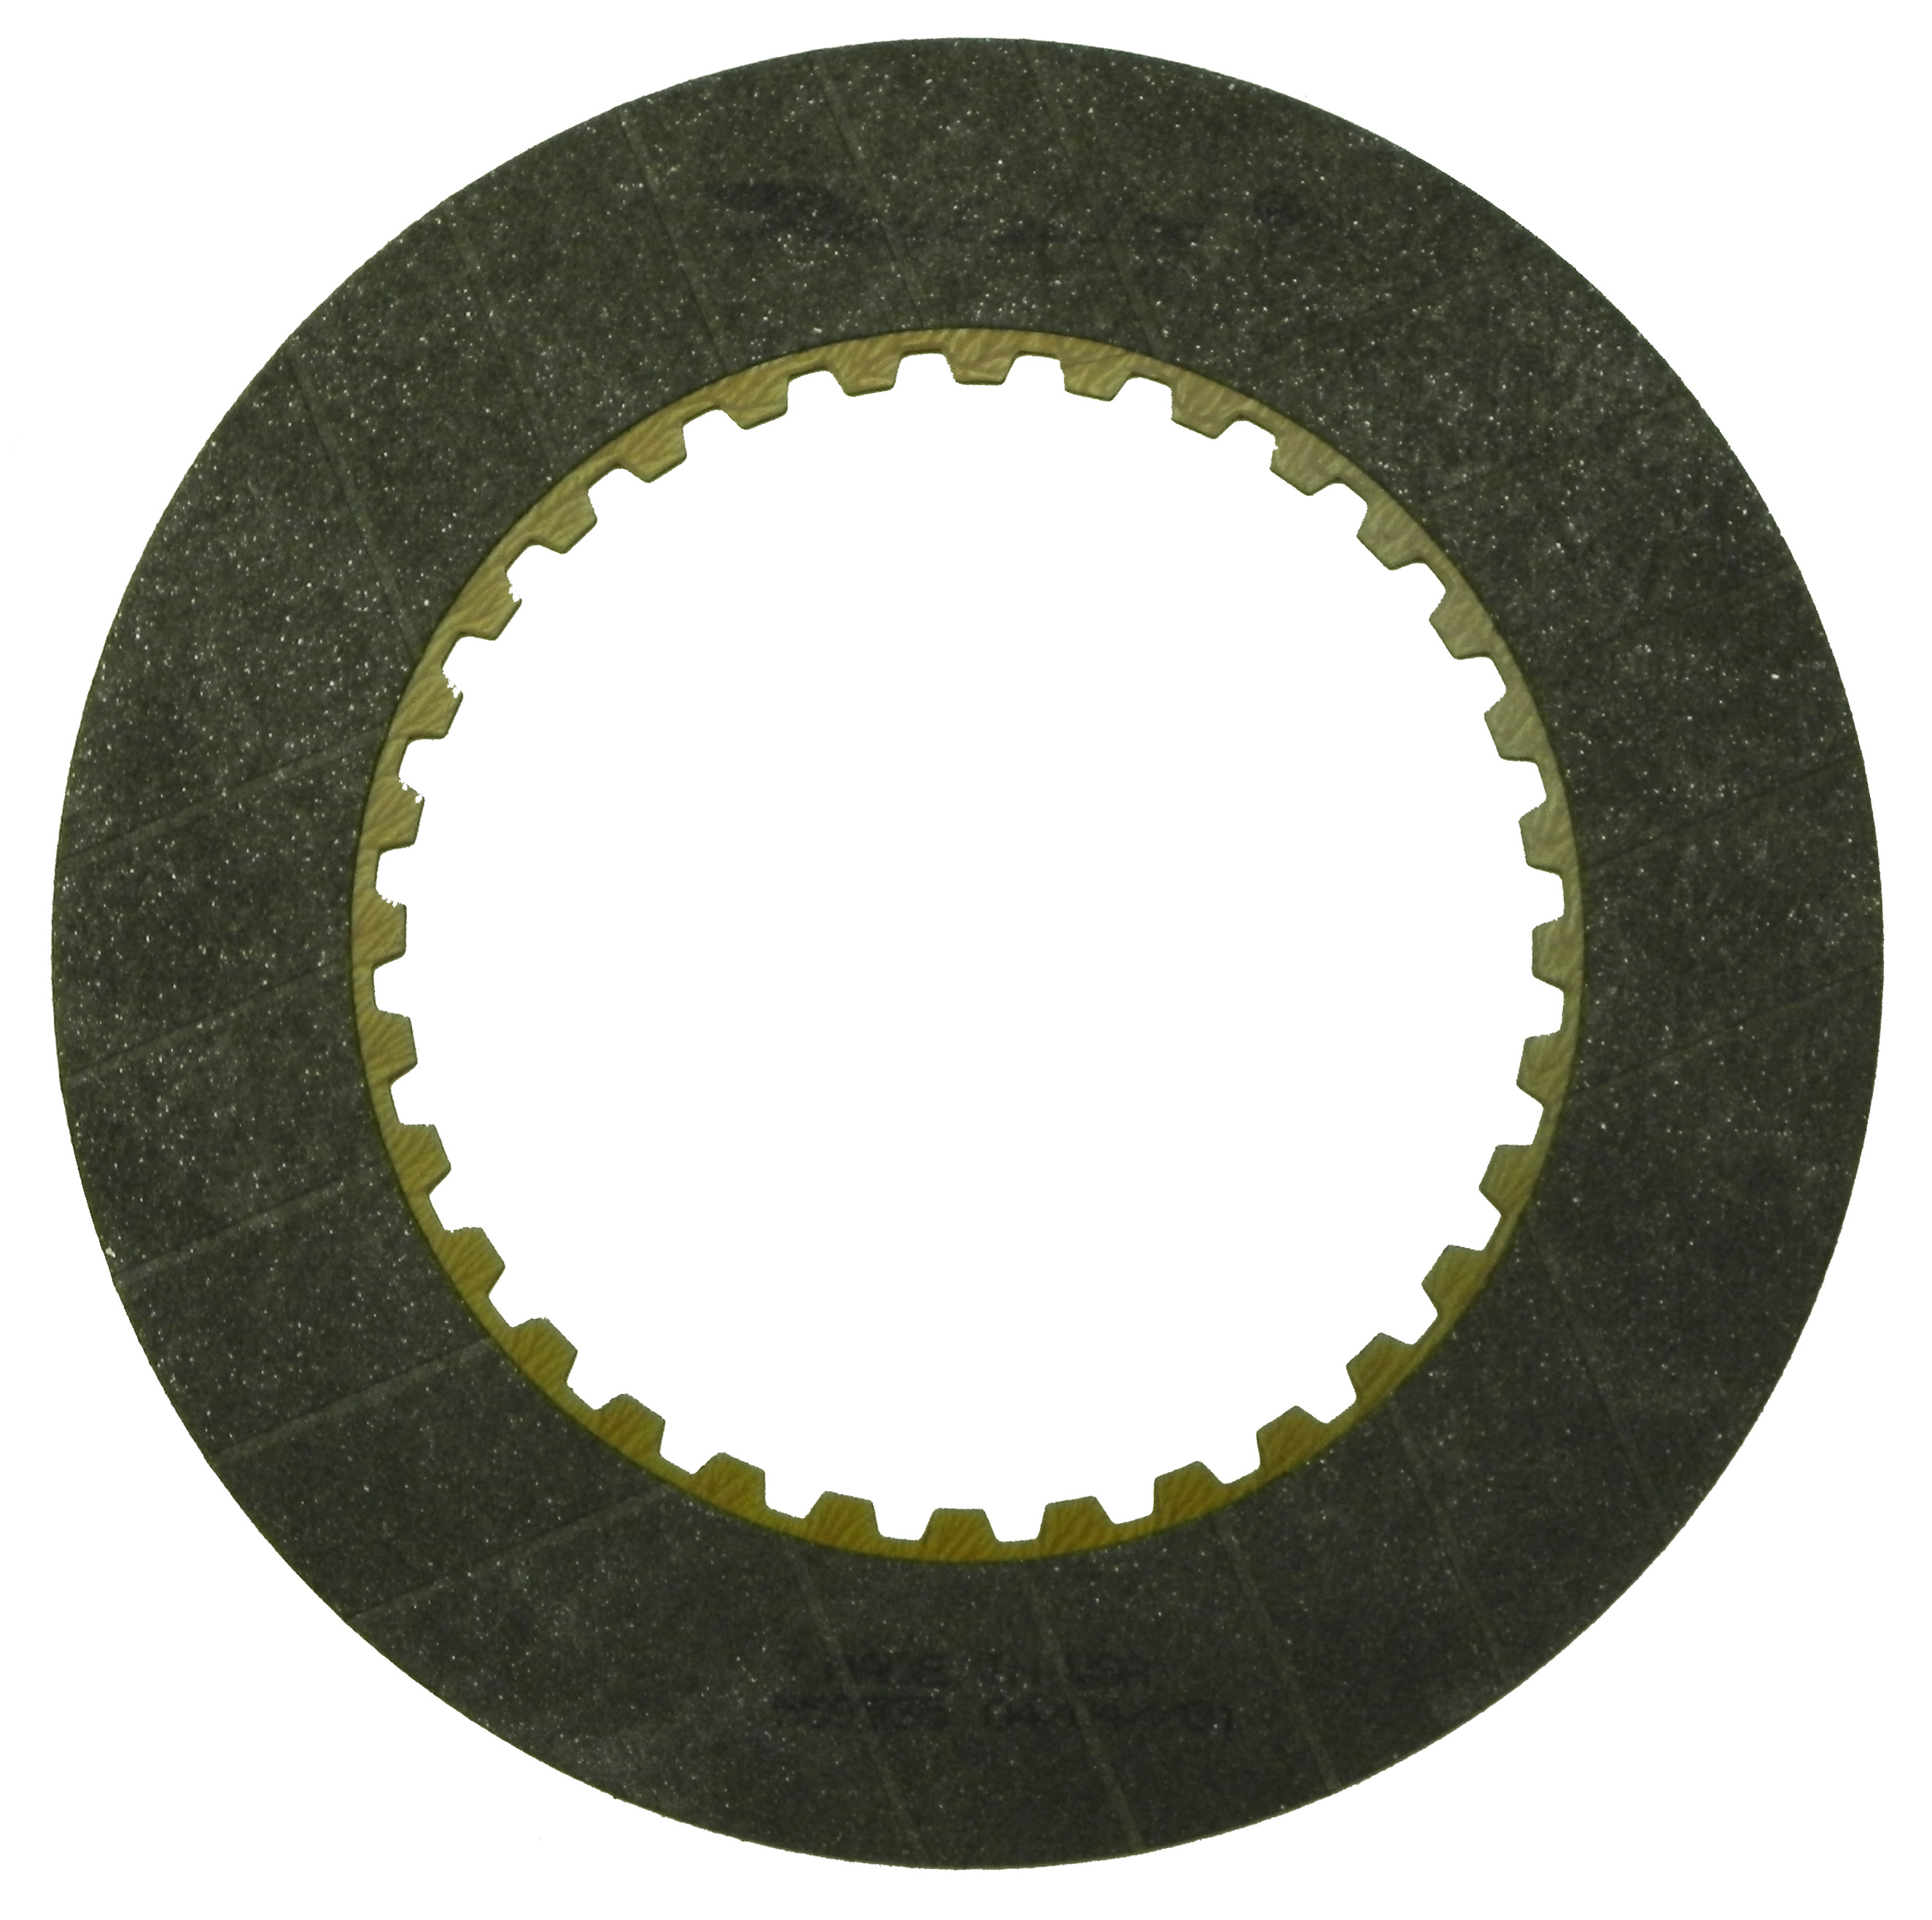 R559535 | 1997-2002 Friction Clutch Plate High Energy 4th High Energy, Thin